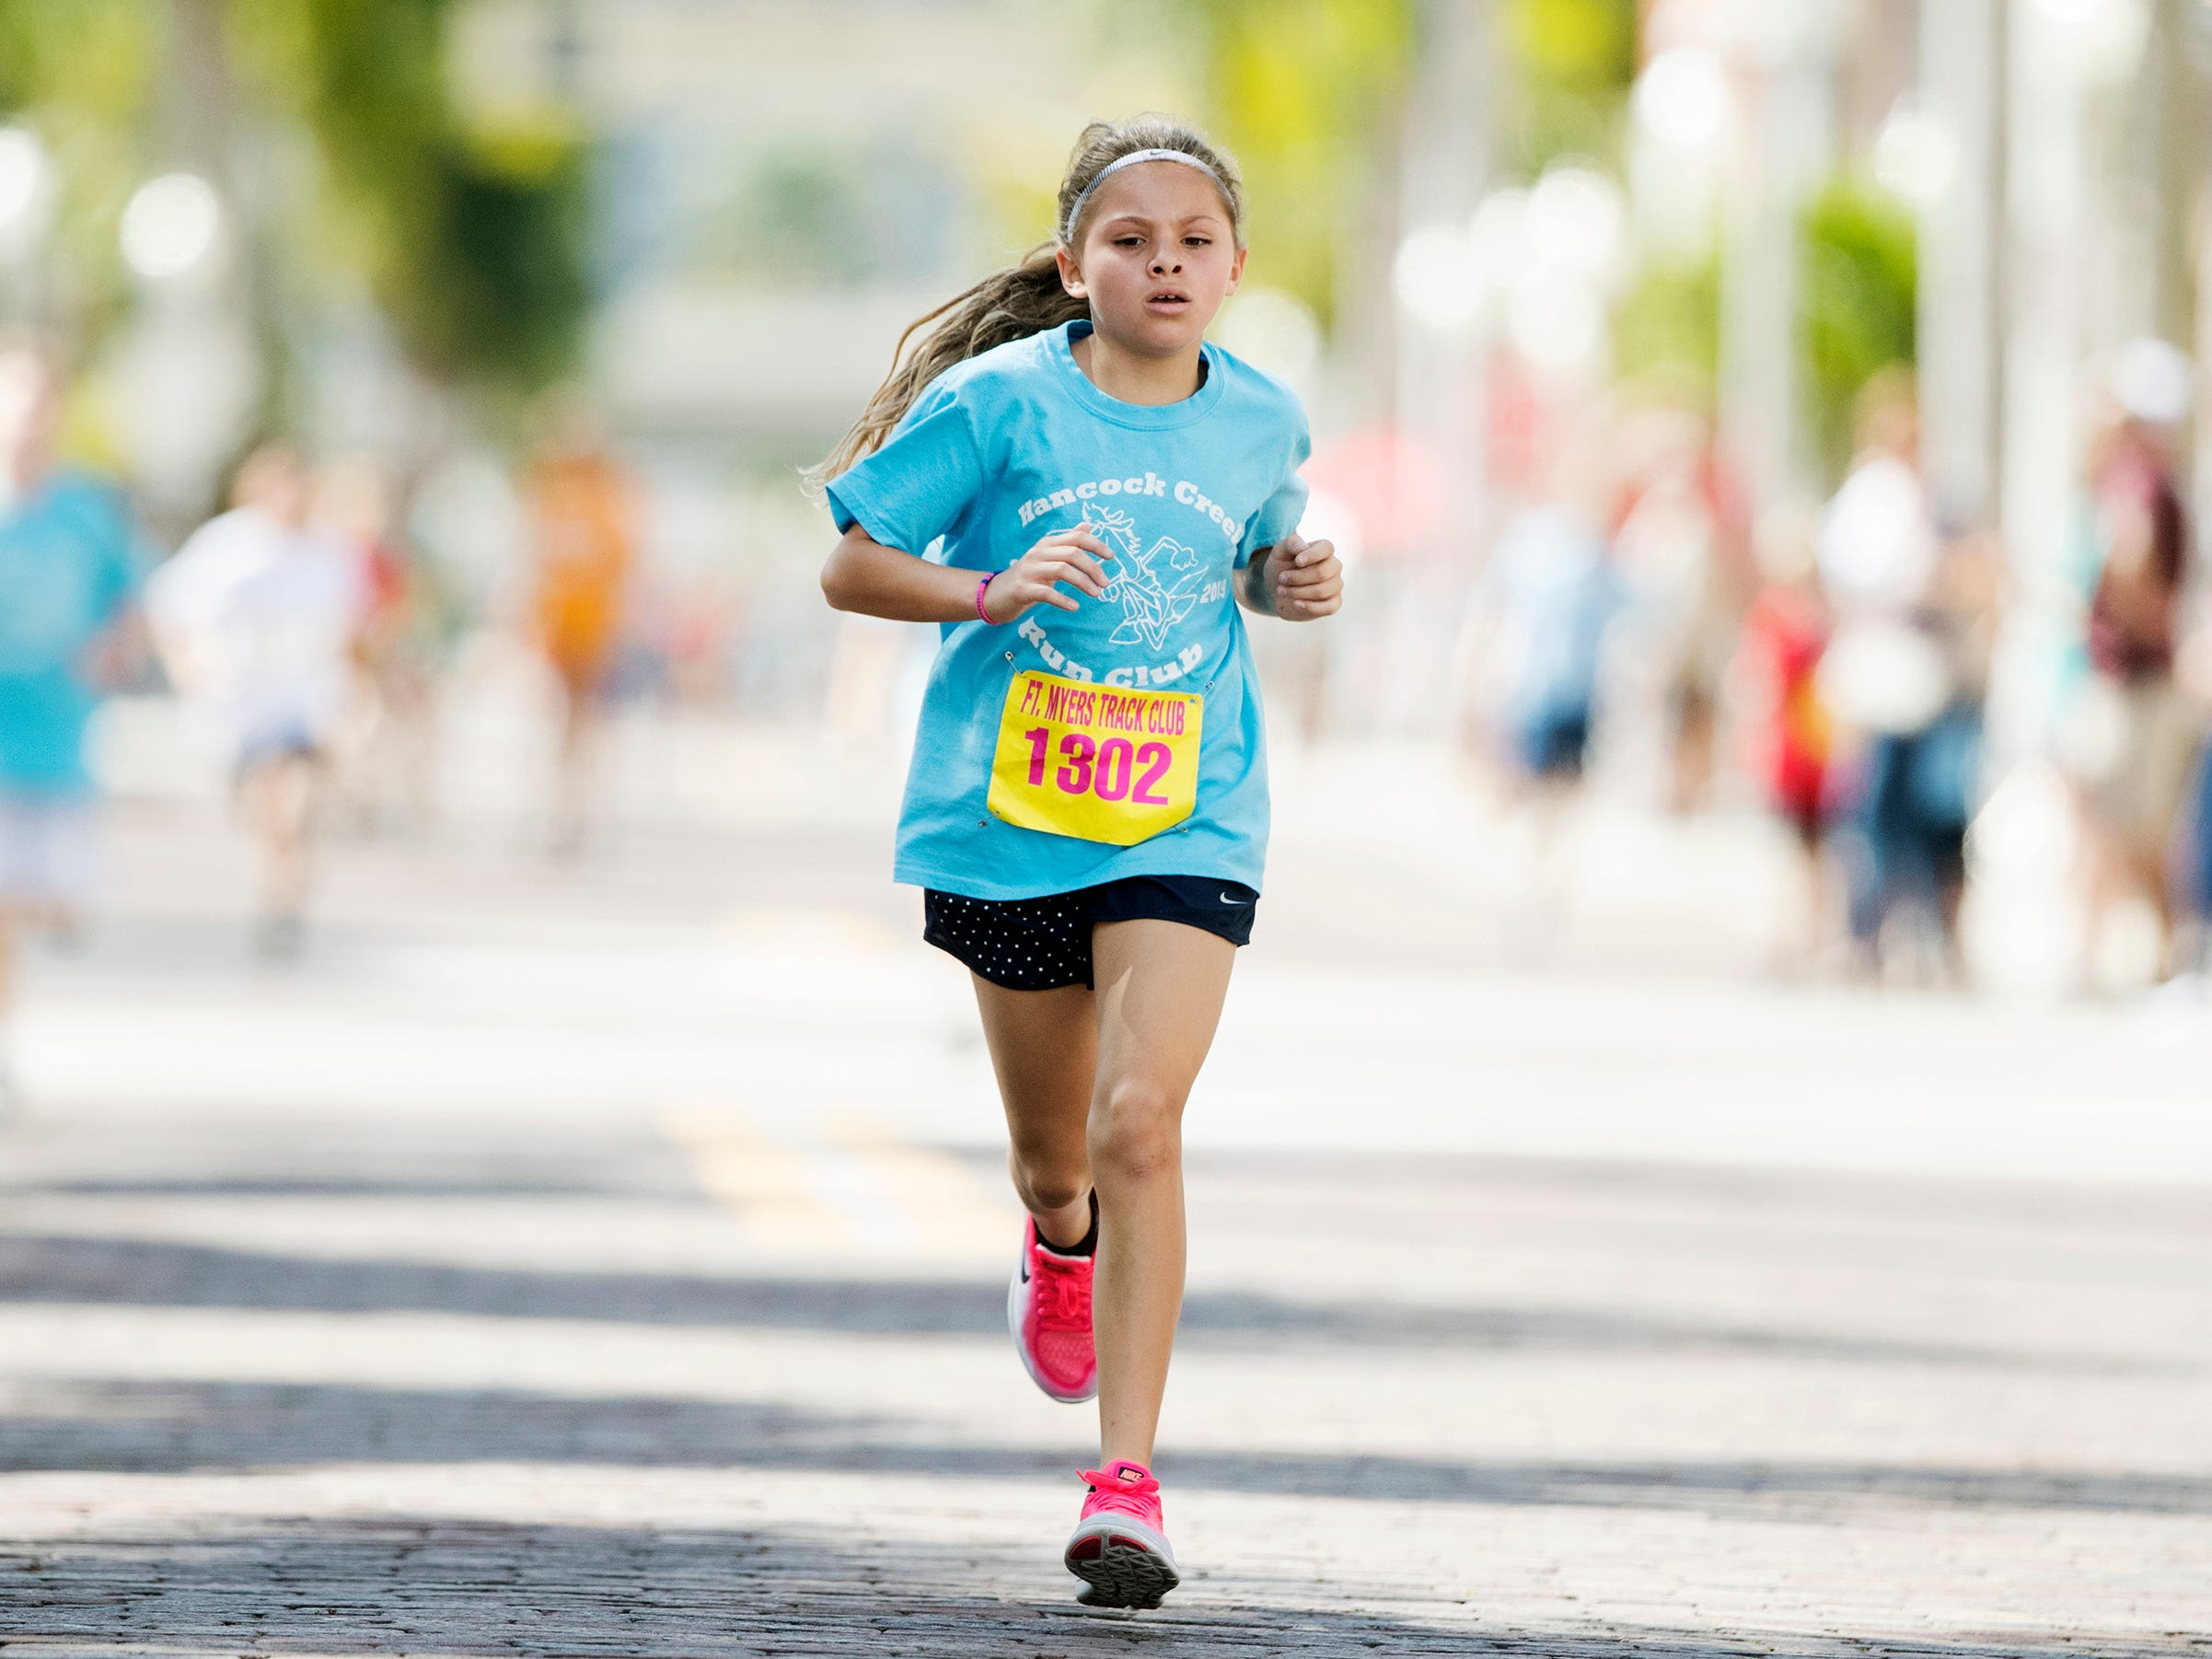 Kenlee Dominguez, 9, wins the mile race in the Edison Festival of Light Junior Fun Run on Sunday in downtown Fort Myers. Kenlee was among more than 300 kids to compete in the races.